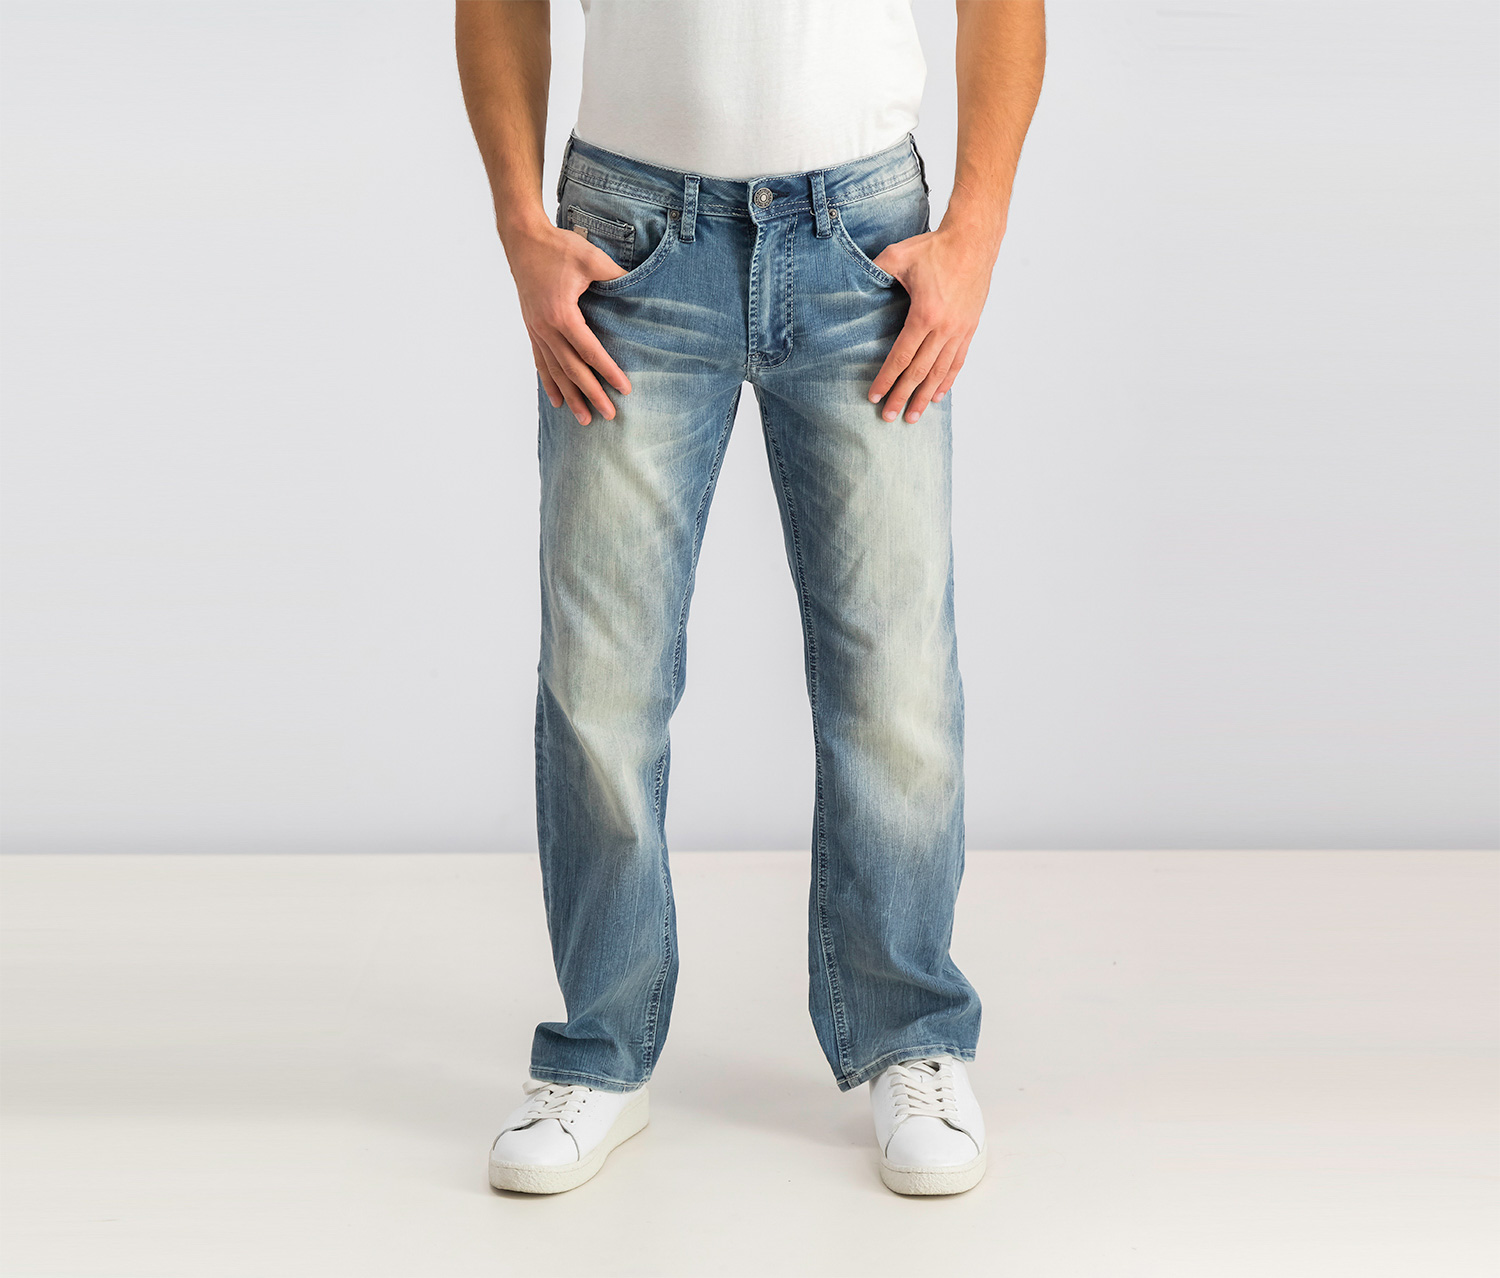 Men's Relaxed Fit Driven-x Stretch Jeans, Wash Blue